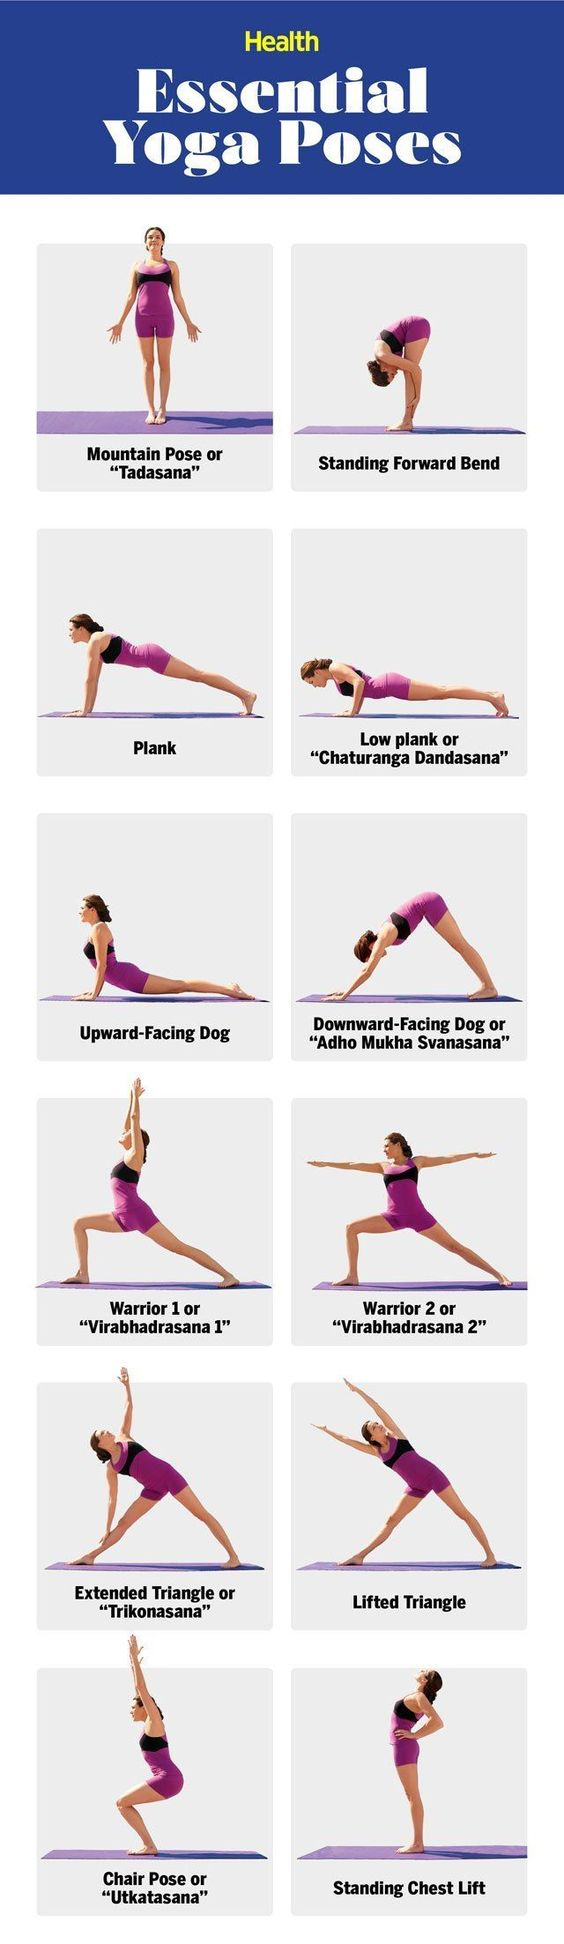 Essential yoga poses everyone should know: Here are 23 terms you will probably hear within your first few yoga classes.   Health.com